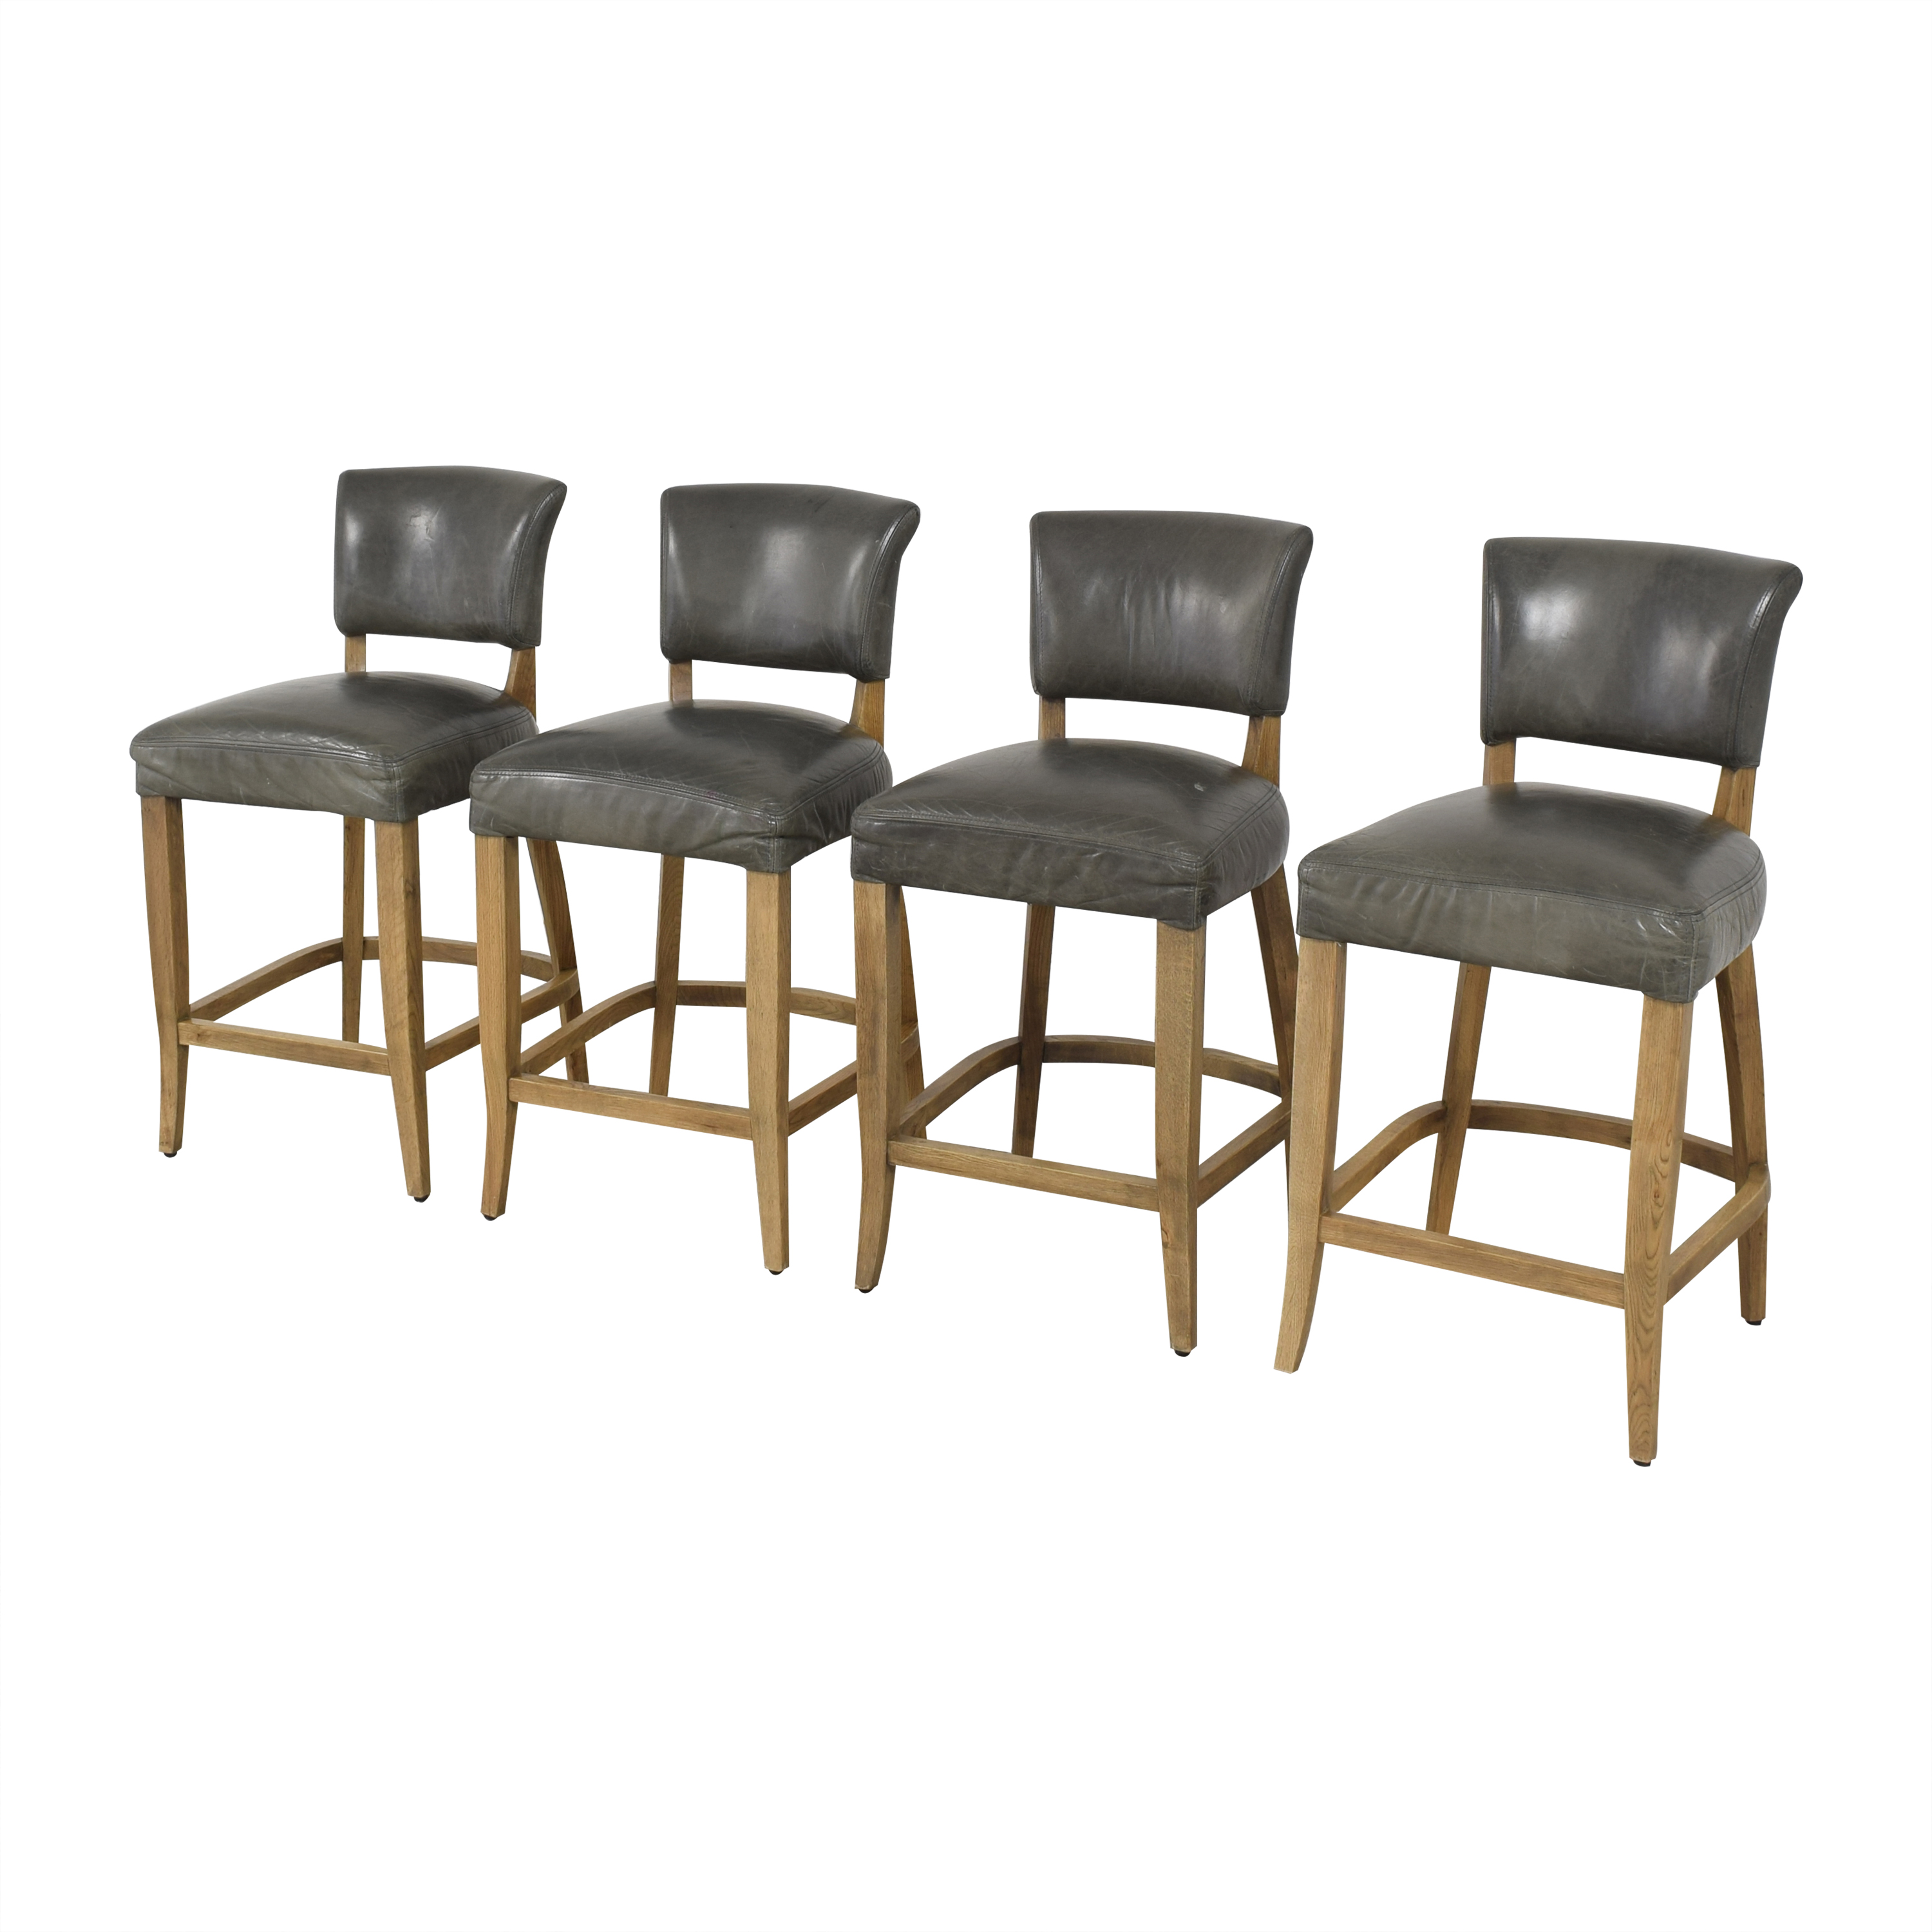 9 OFF   Restoration Hardware Restoration Hardware Adèle Counter Stools /  Chairs